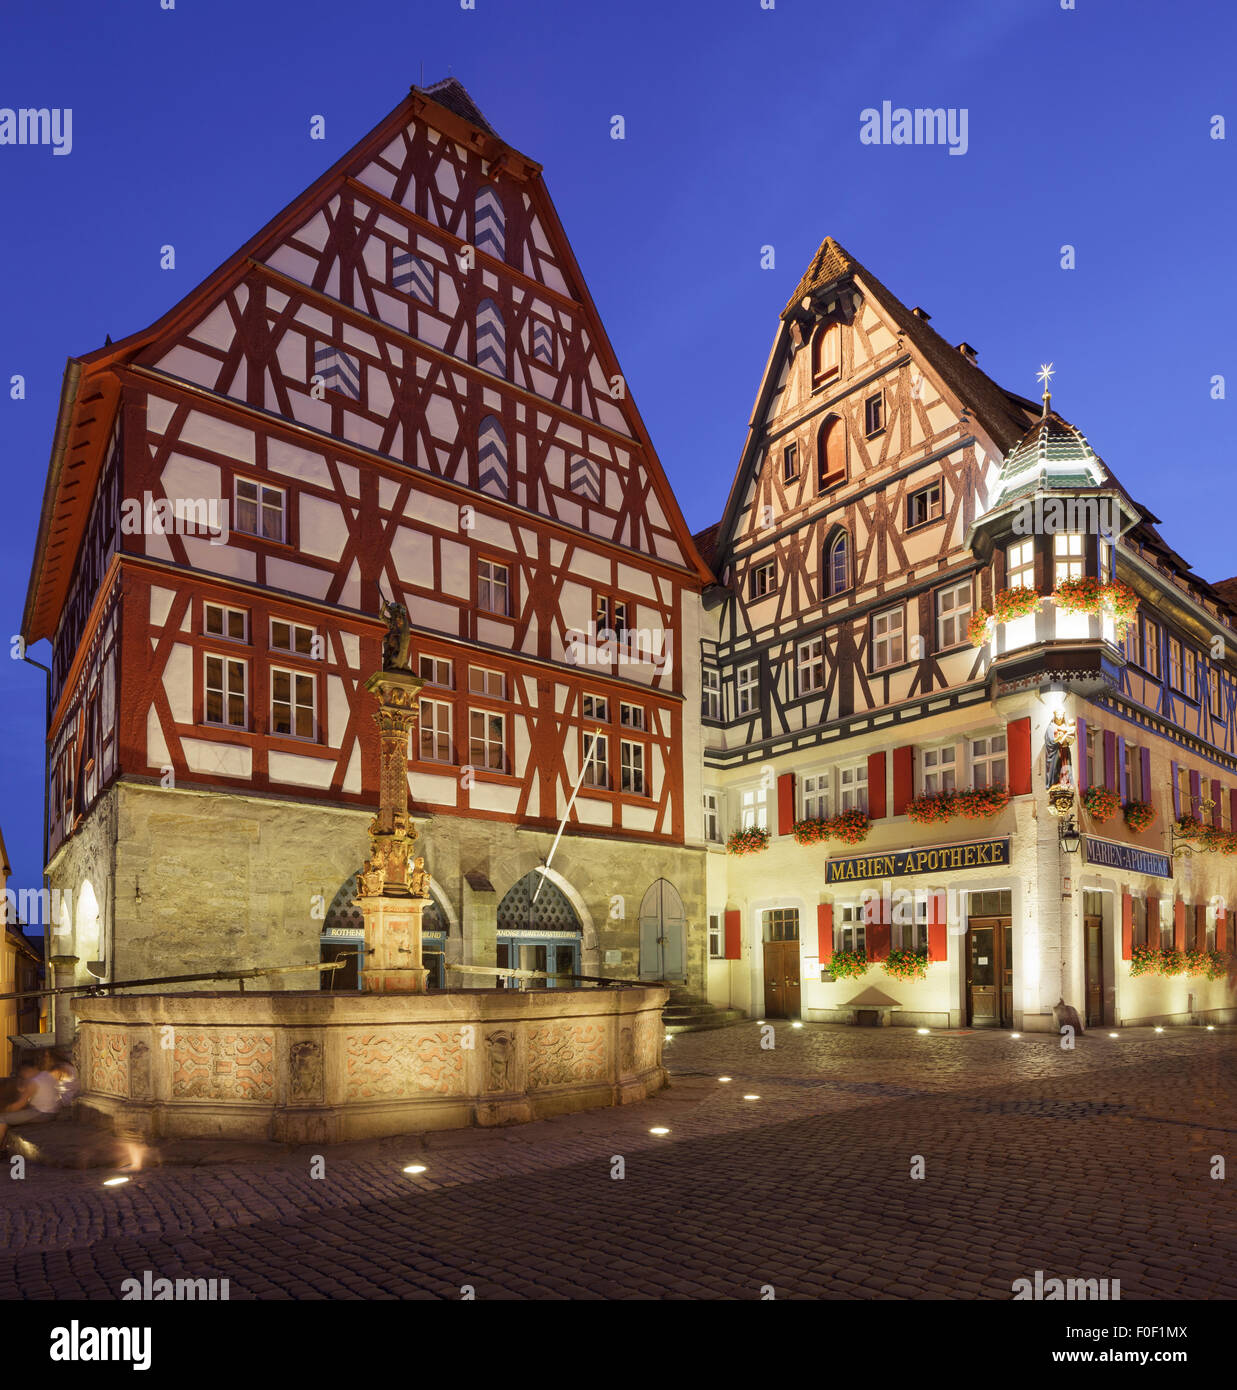 typical medieval buildings with George's Spring, Rothenburg ob der Tauber, Franconia, Bavaria, Germany - Stock Image